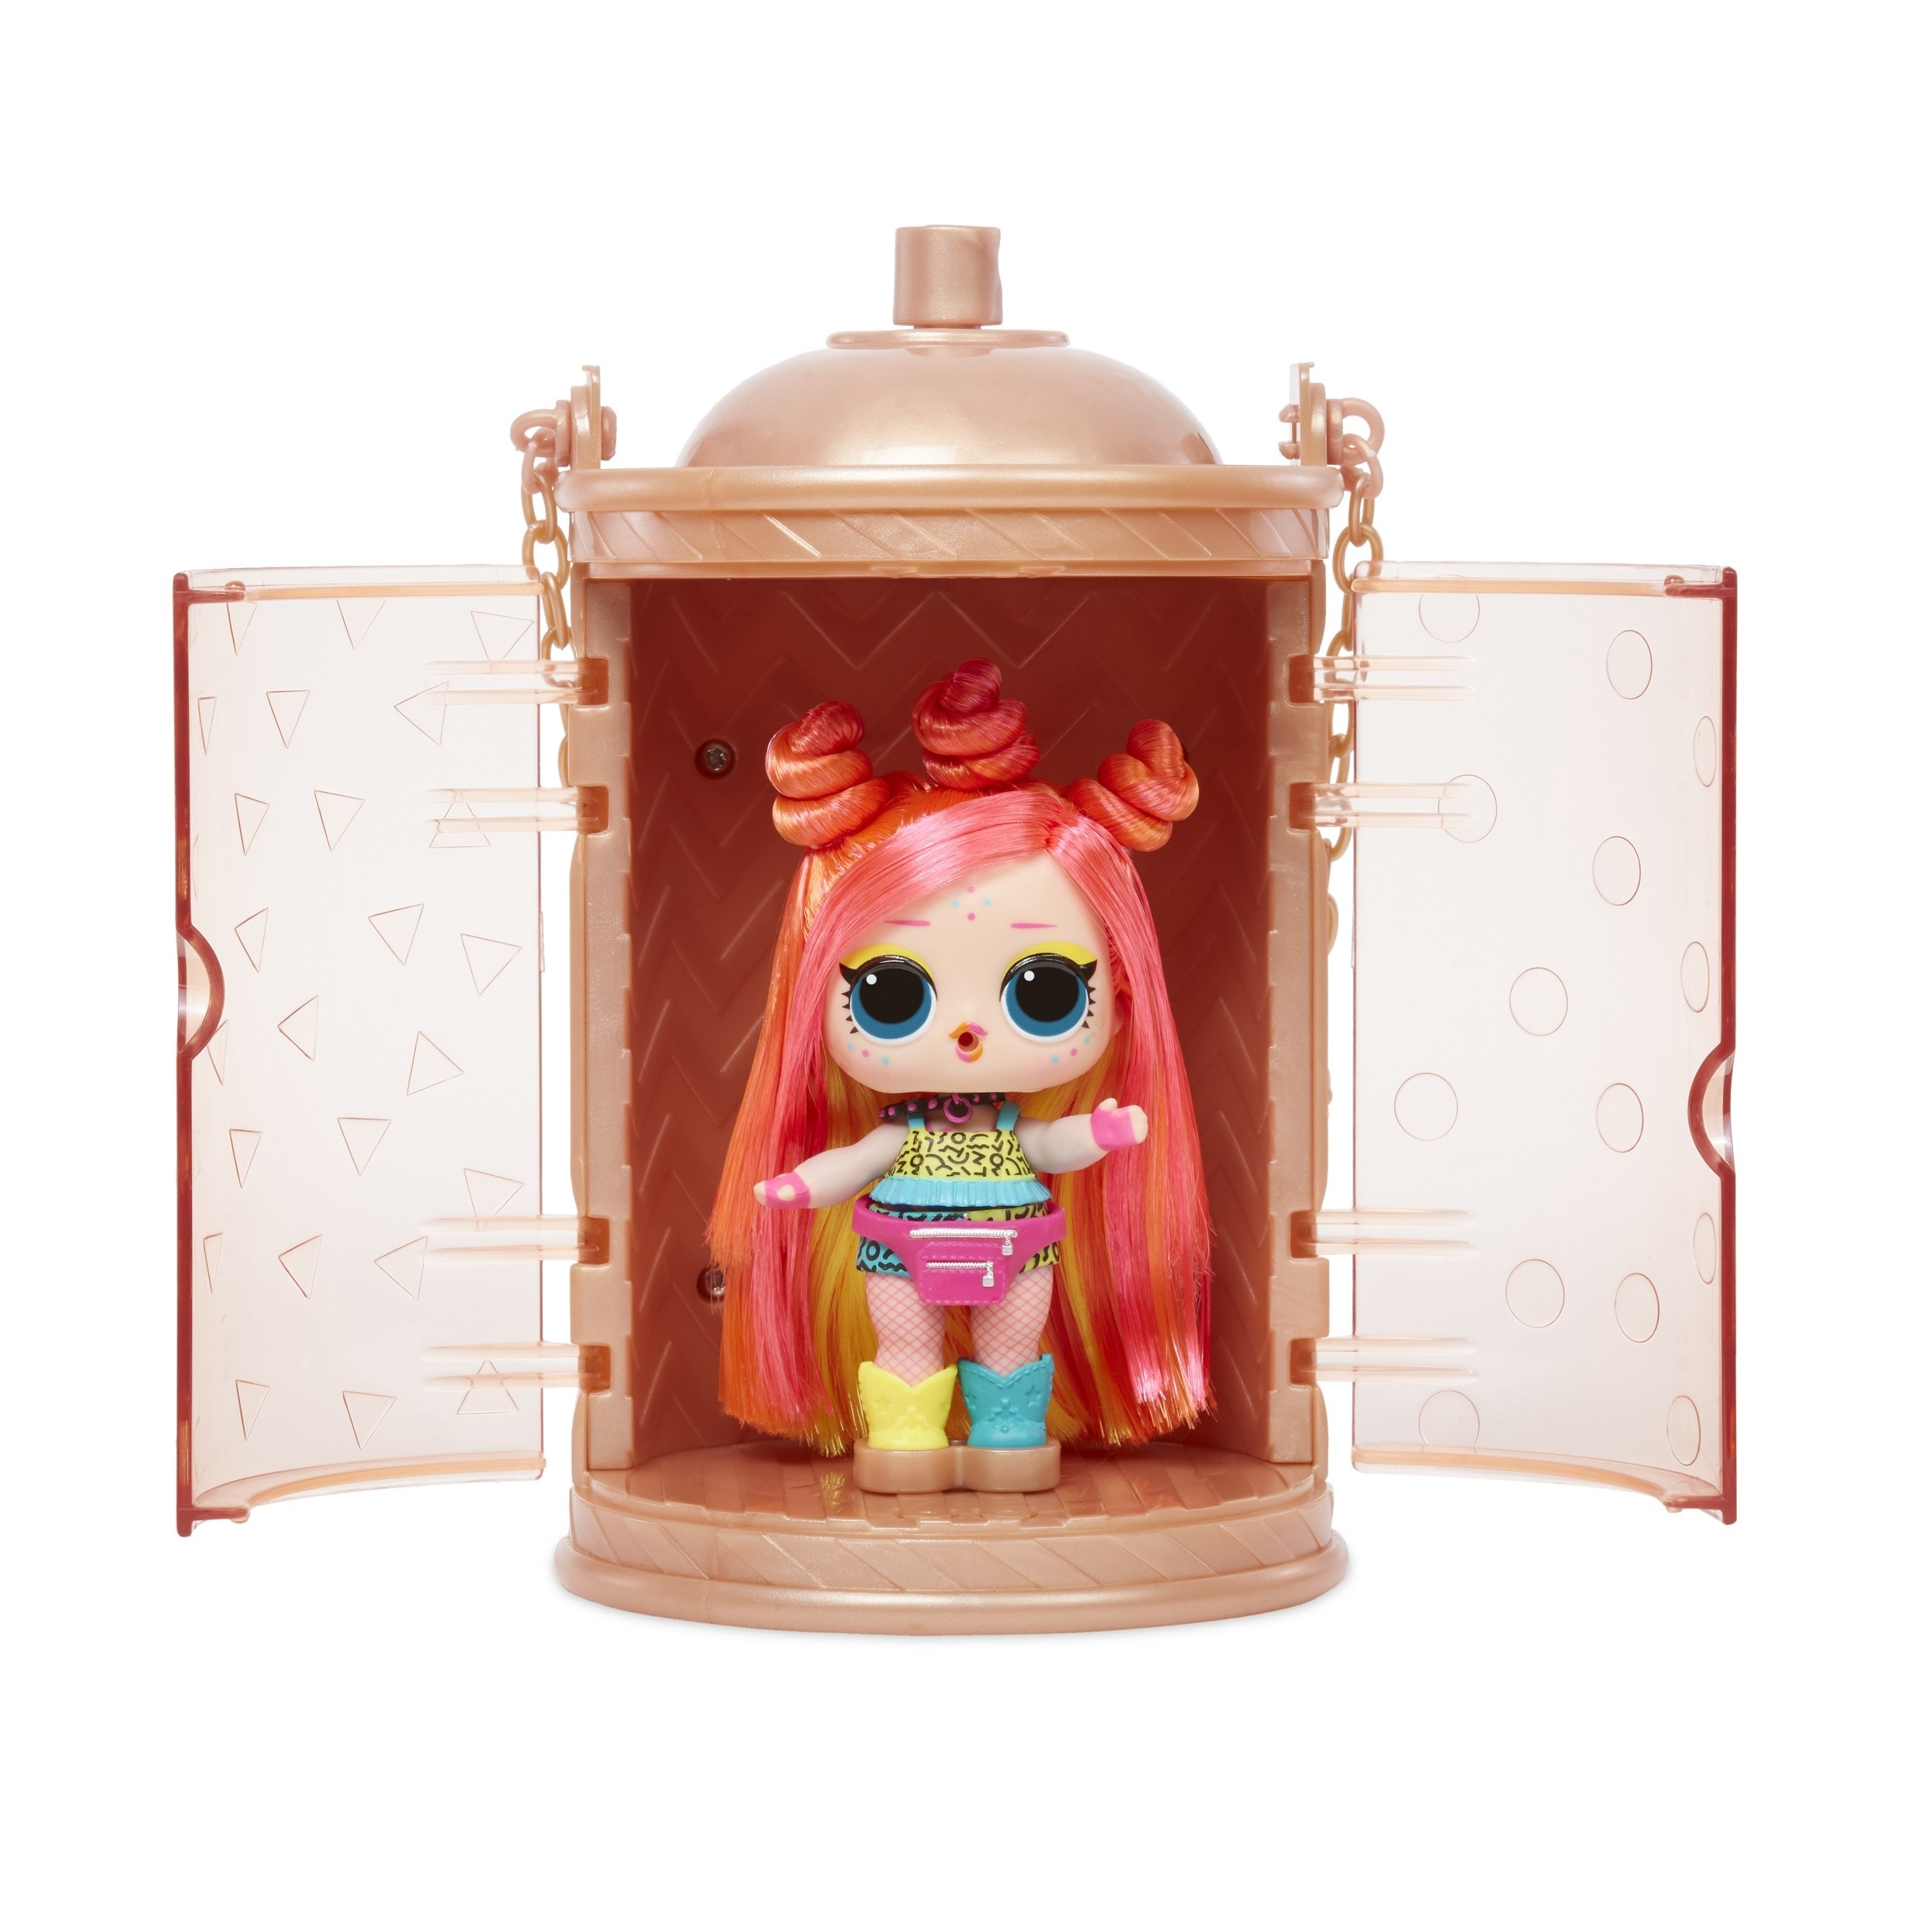 an lol surprise doll with pink hair and orange highlights and colorful accessories. the doll is sitting in a capsule-style case